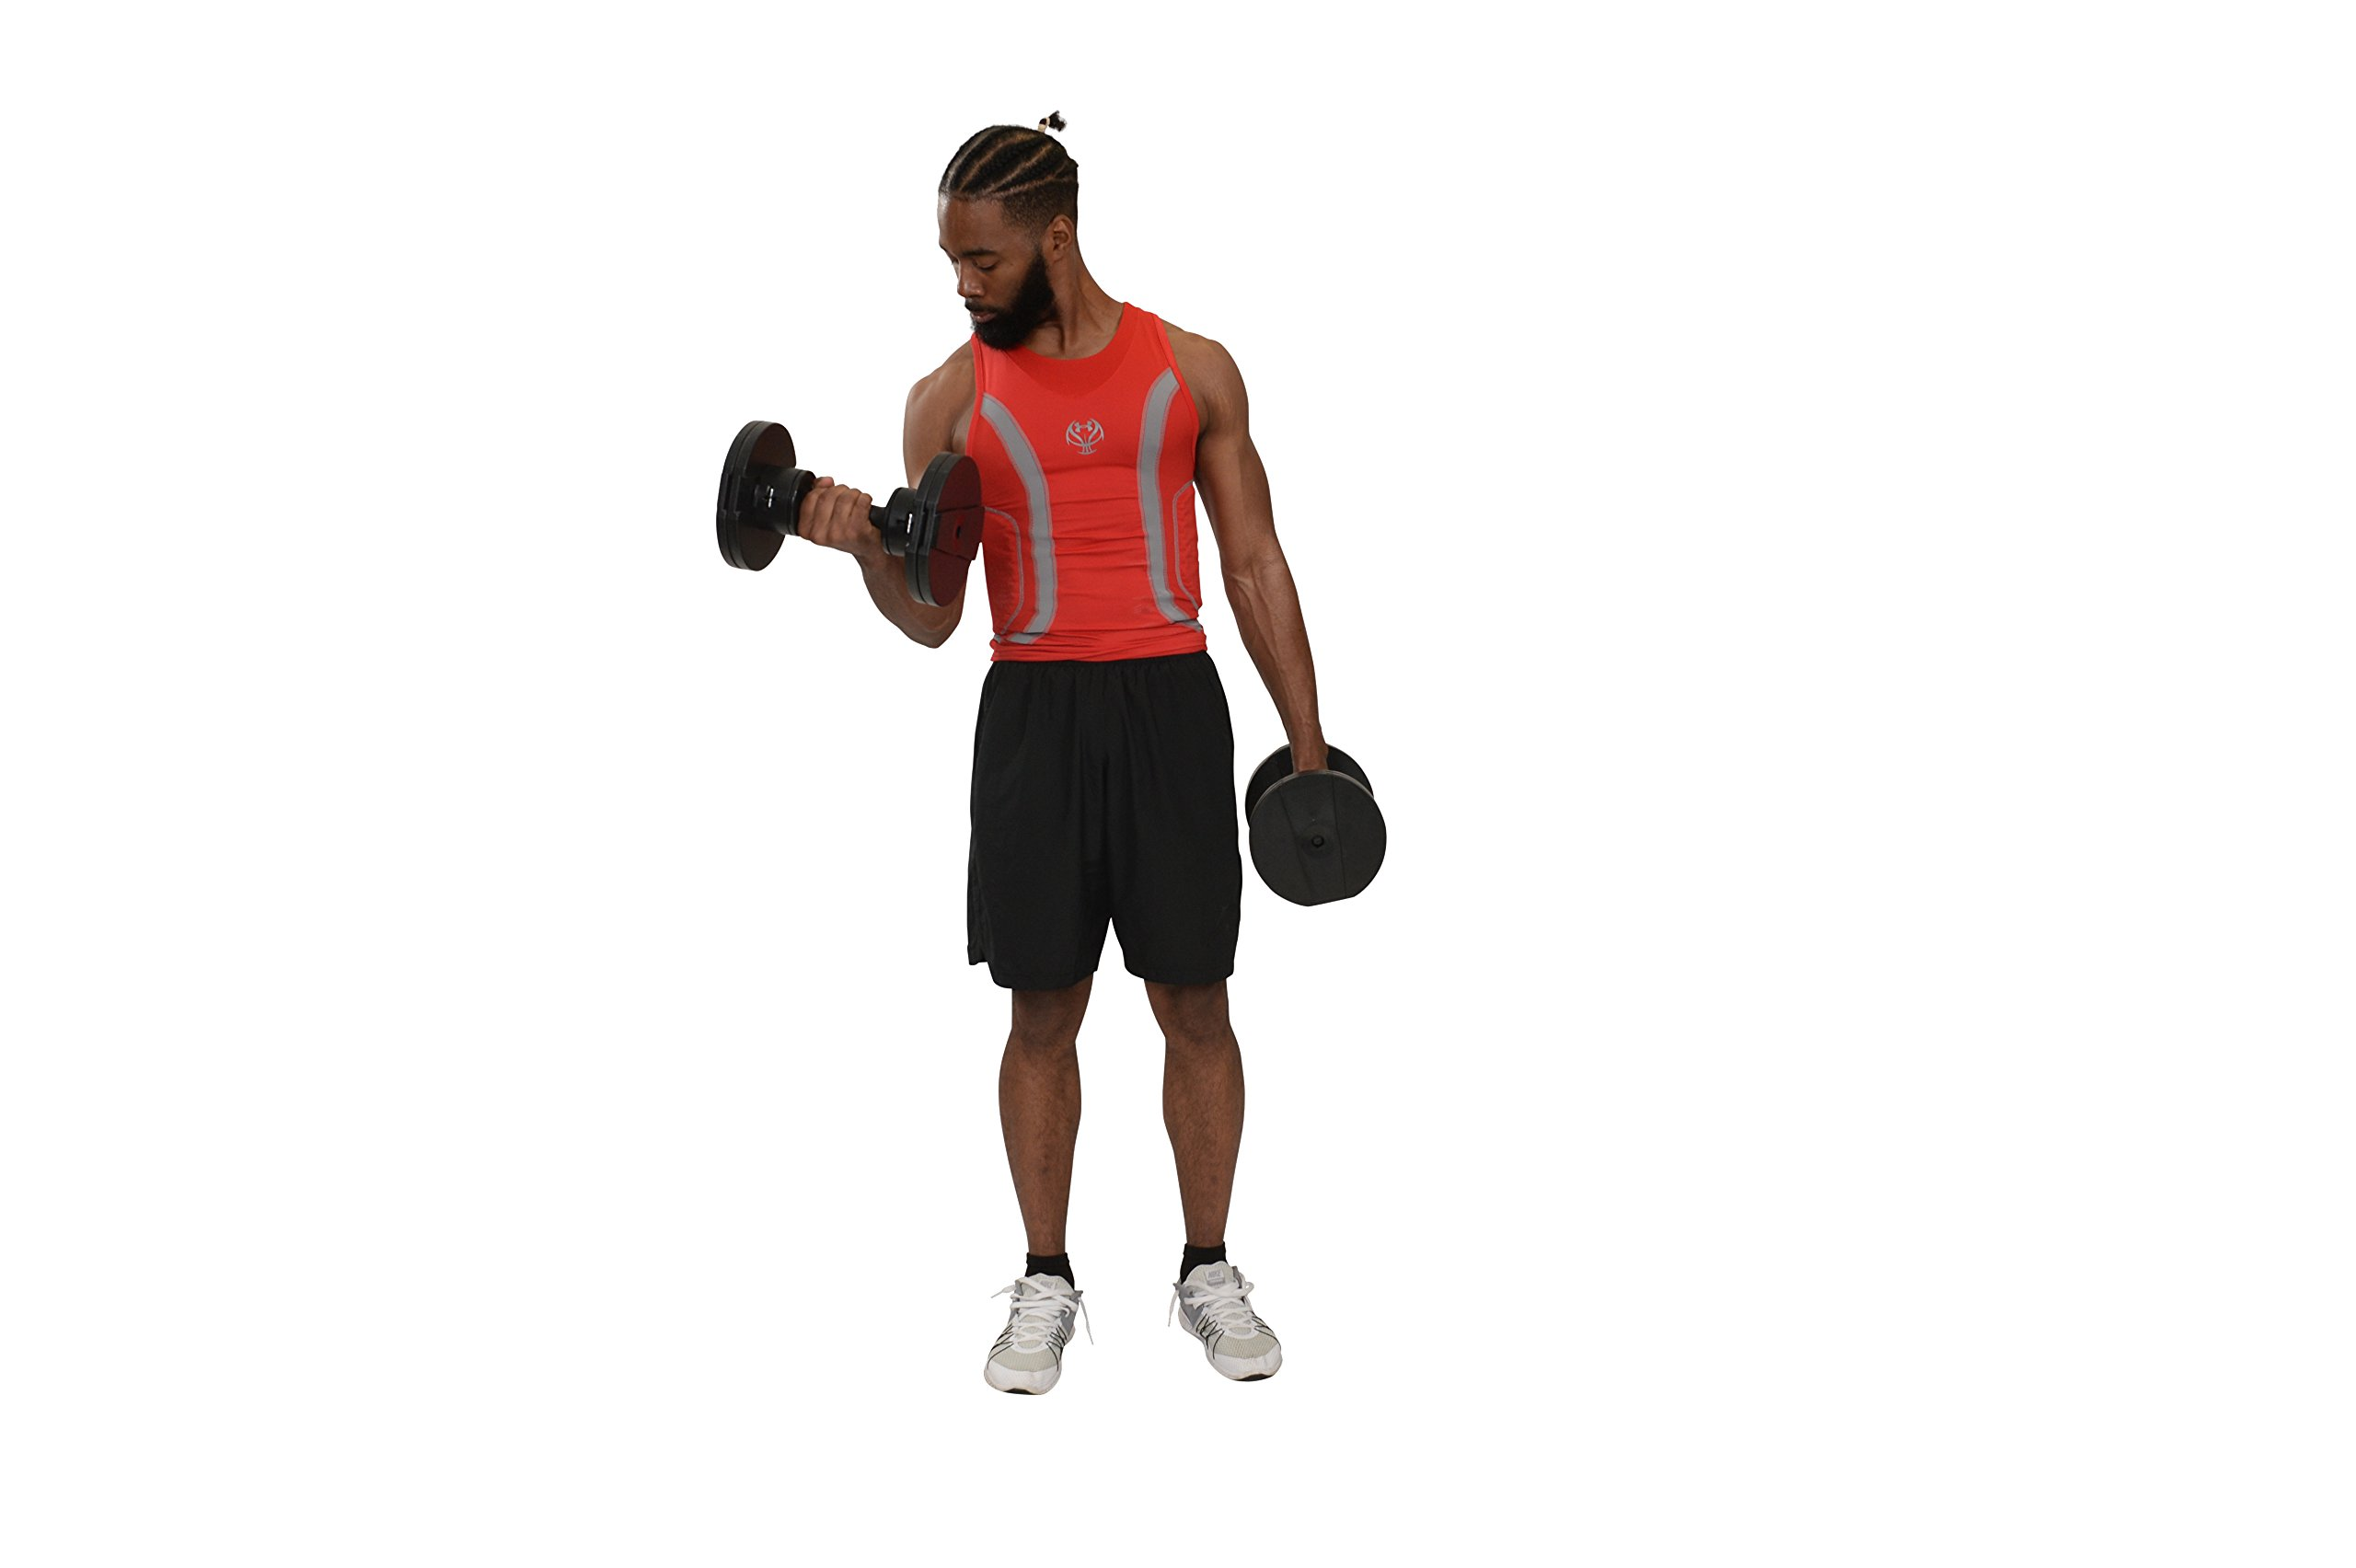 Core Fitness® Adjustable Dumbbell Weight Set by Affordable Dumbbells - Adjustable Weights - Space Saver - Weights - Dumbbells for Your Home - by Core Fitness® (Image #5)